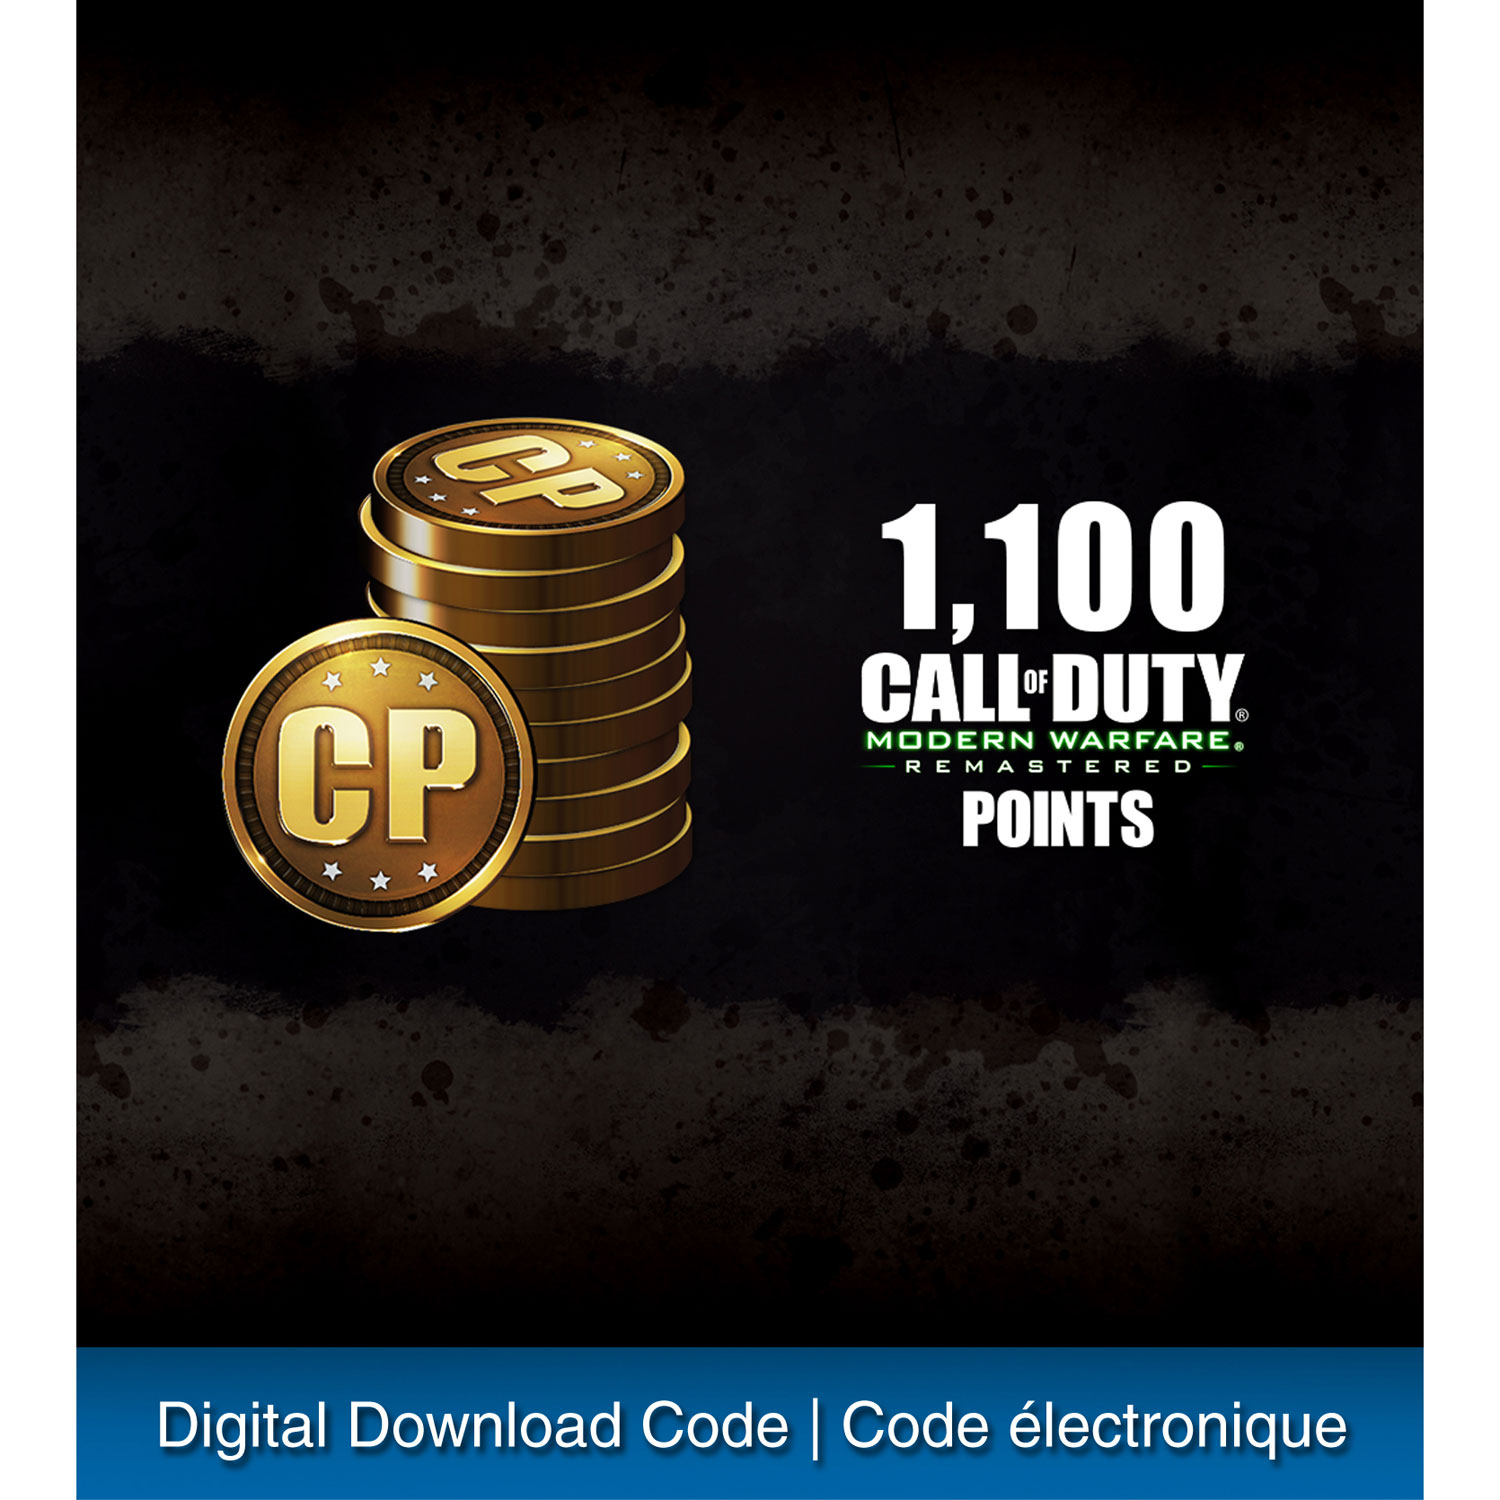 14367349 - How To Get Free Cod Points Modern Warfare Remastered